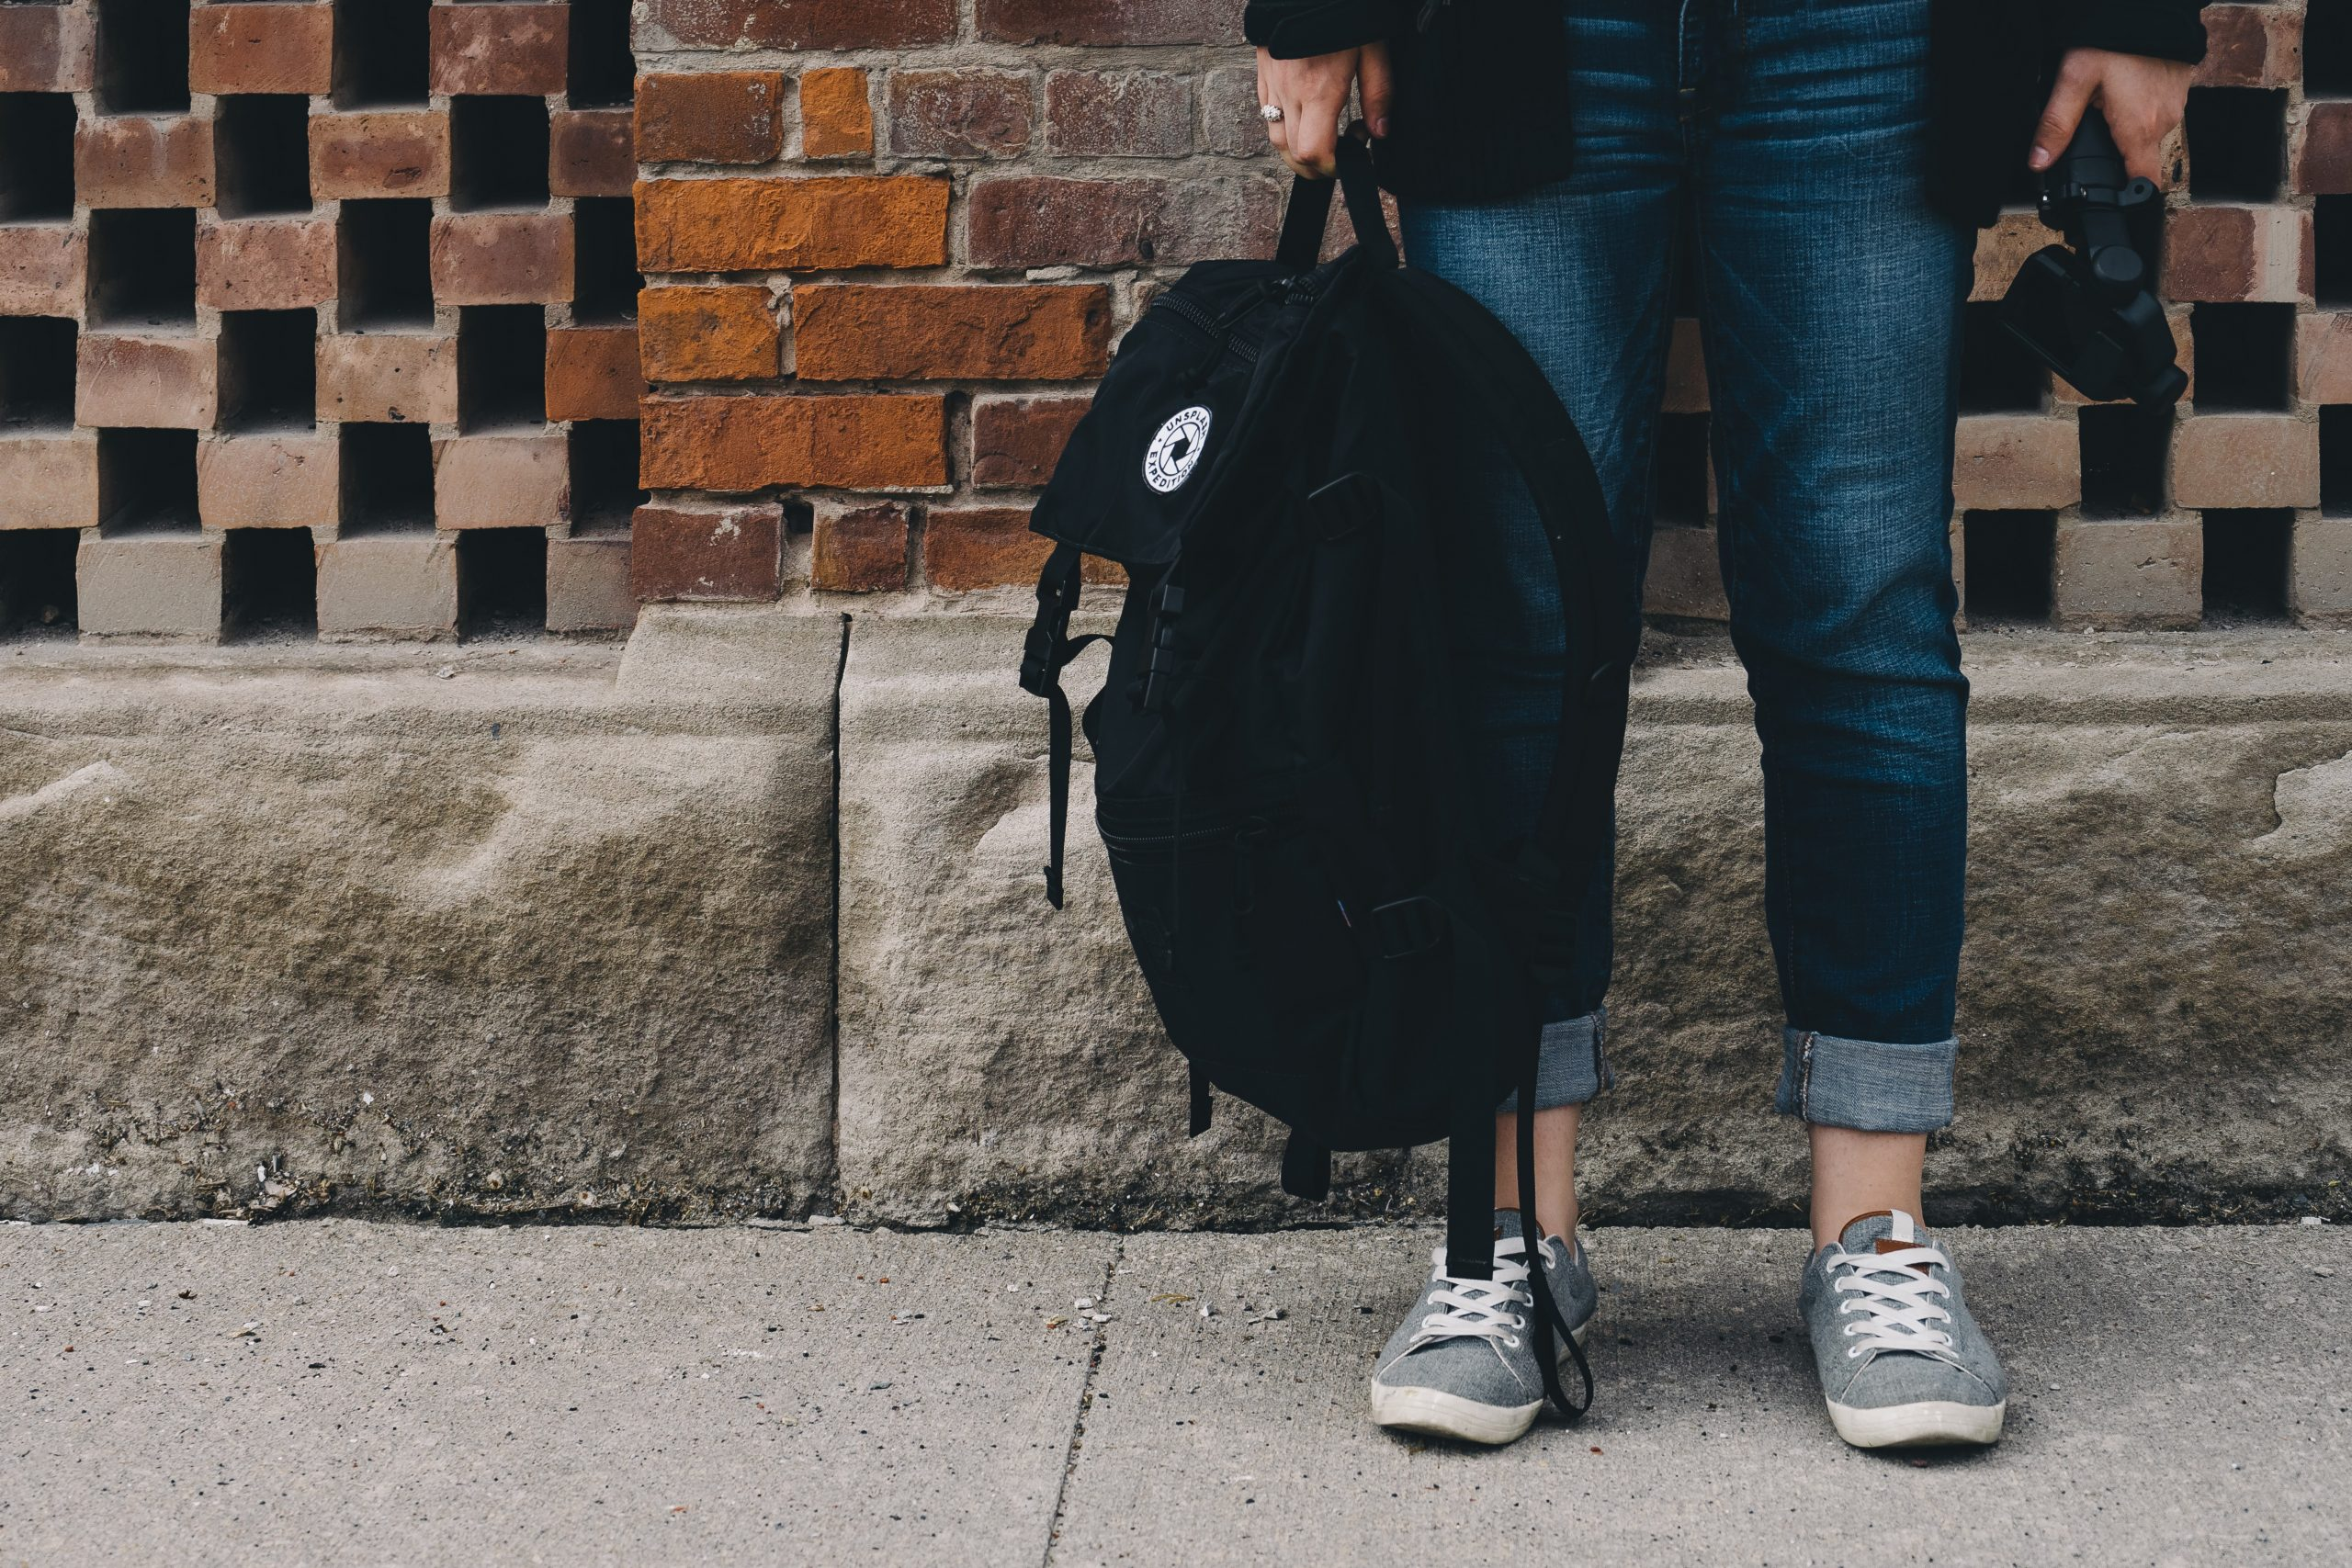 Image shows legs of a person standing near brick wall, holding black rucksack.